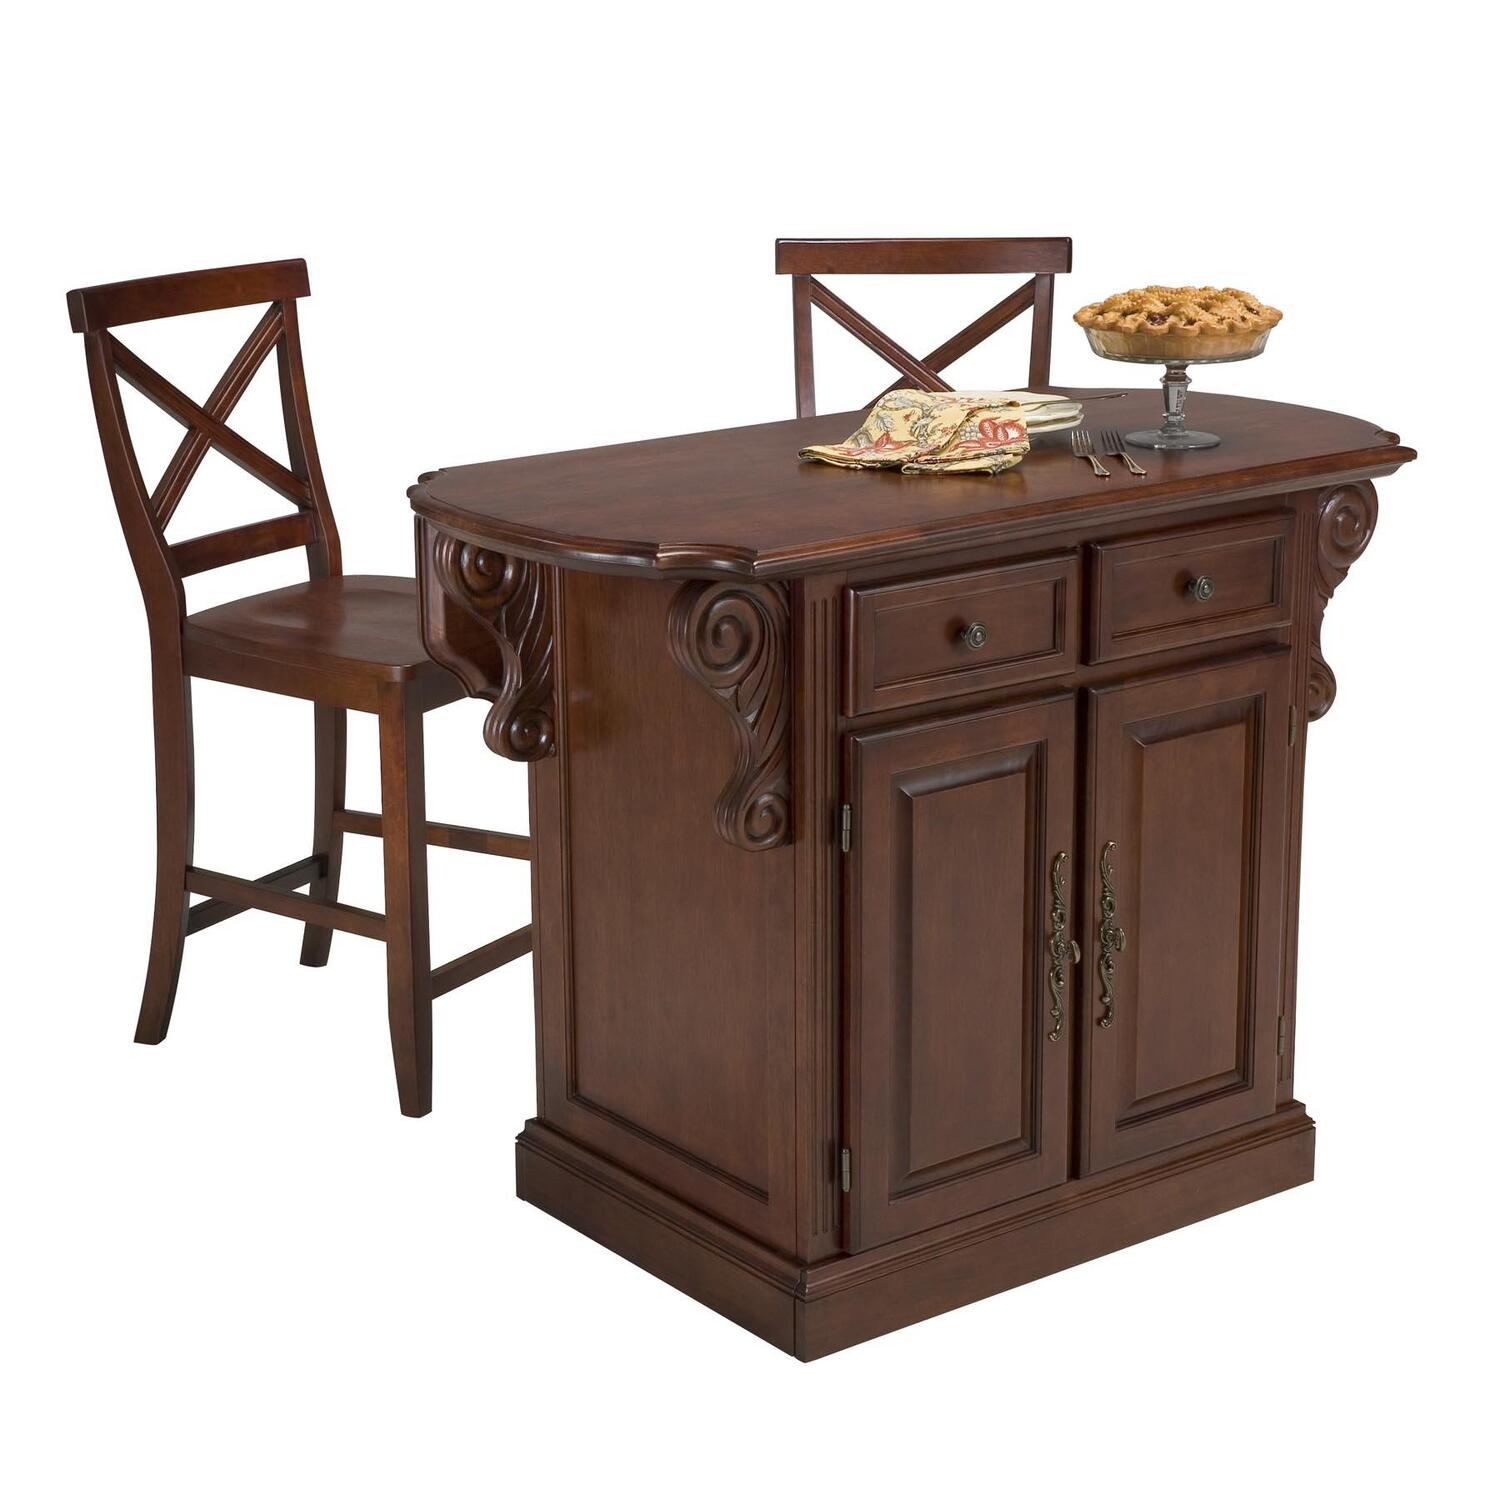 Home styles traditions kitchen island and two bar stools for Bar stools for kitchen island